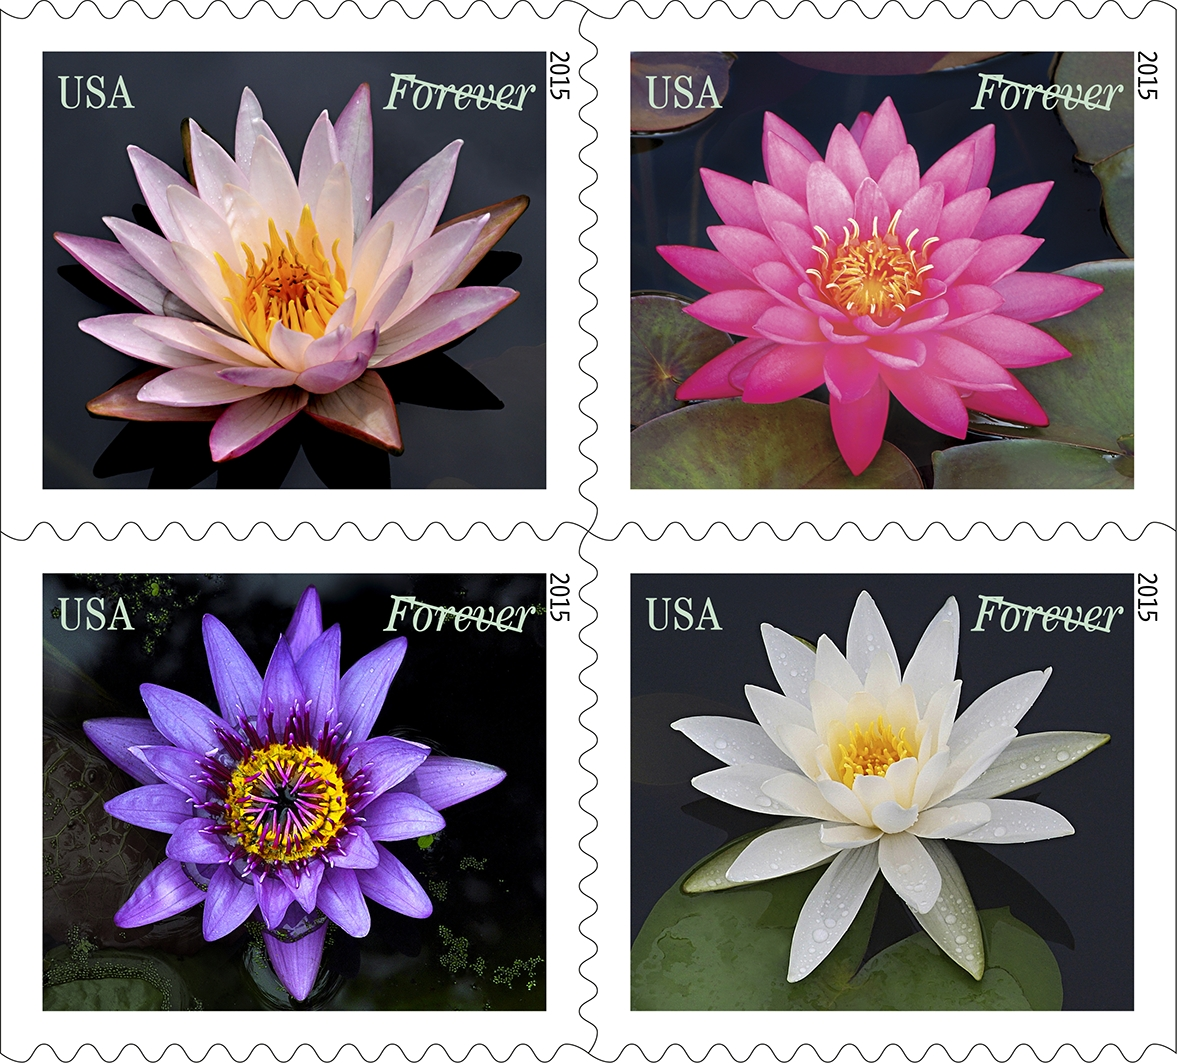 Dyer's water lily stamps. Photograph courtesy of Cindy Dyer.